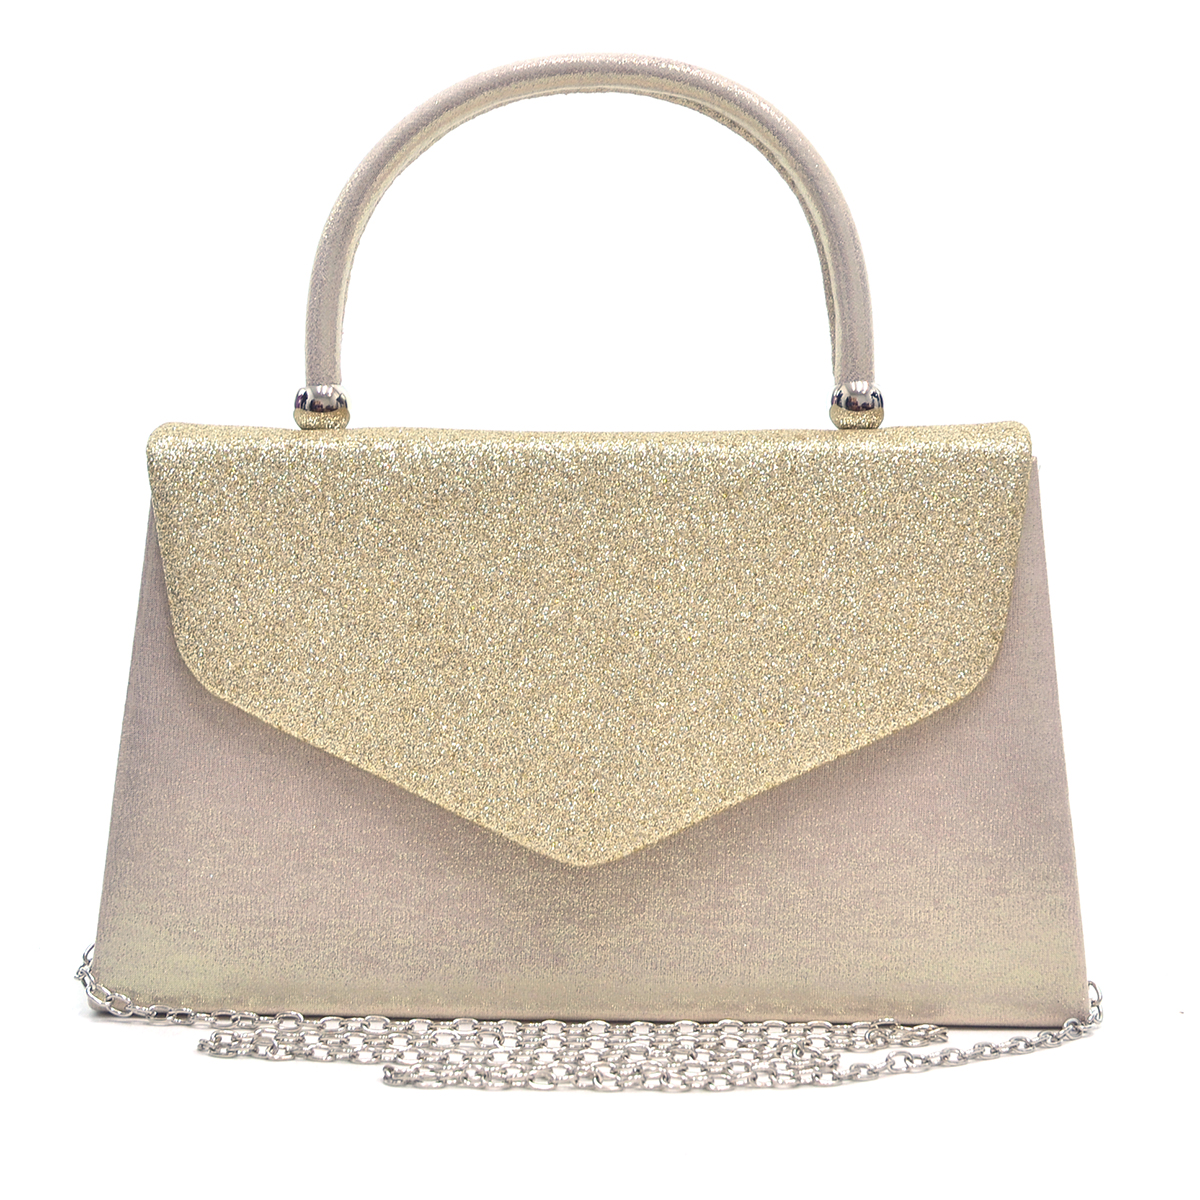 Glitter Frosted Clutch with Top Handle and  Removable Chain Strap